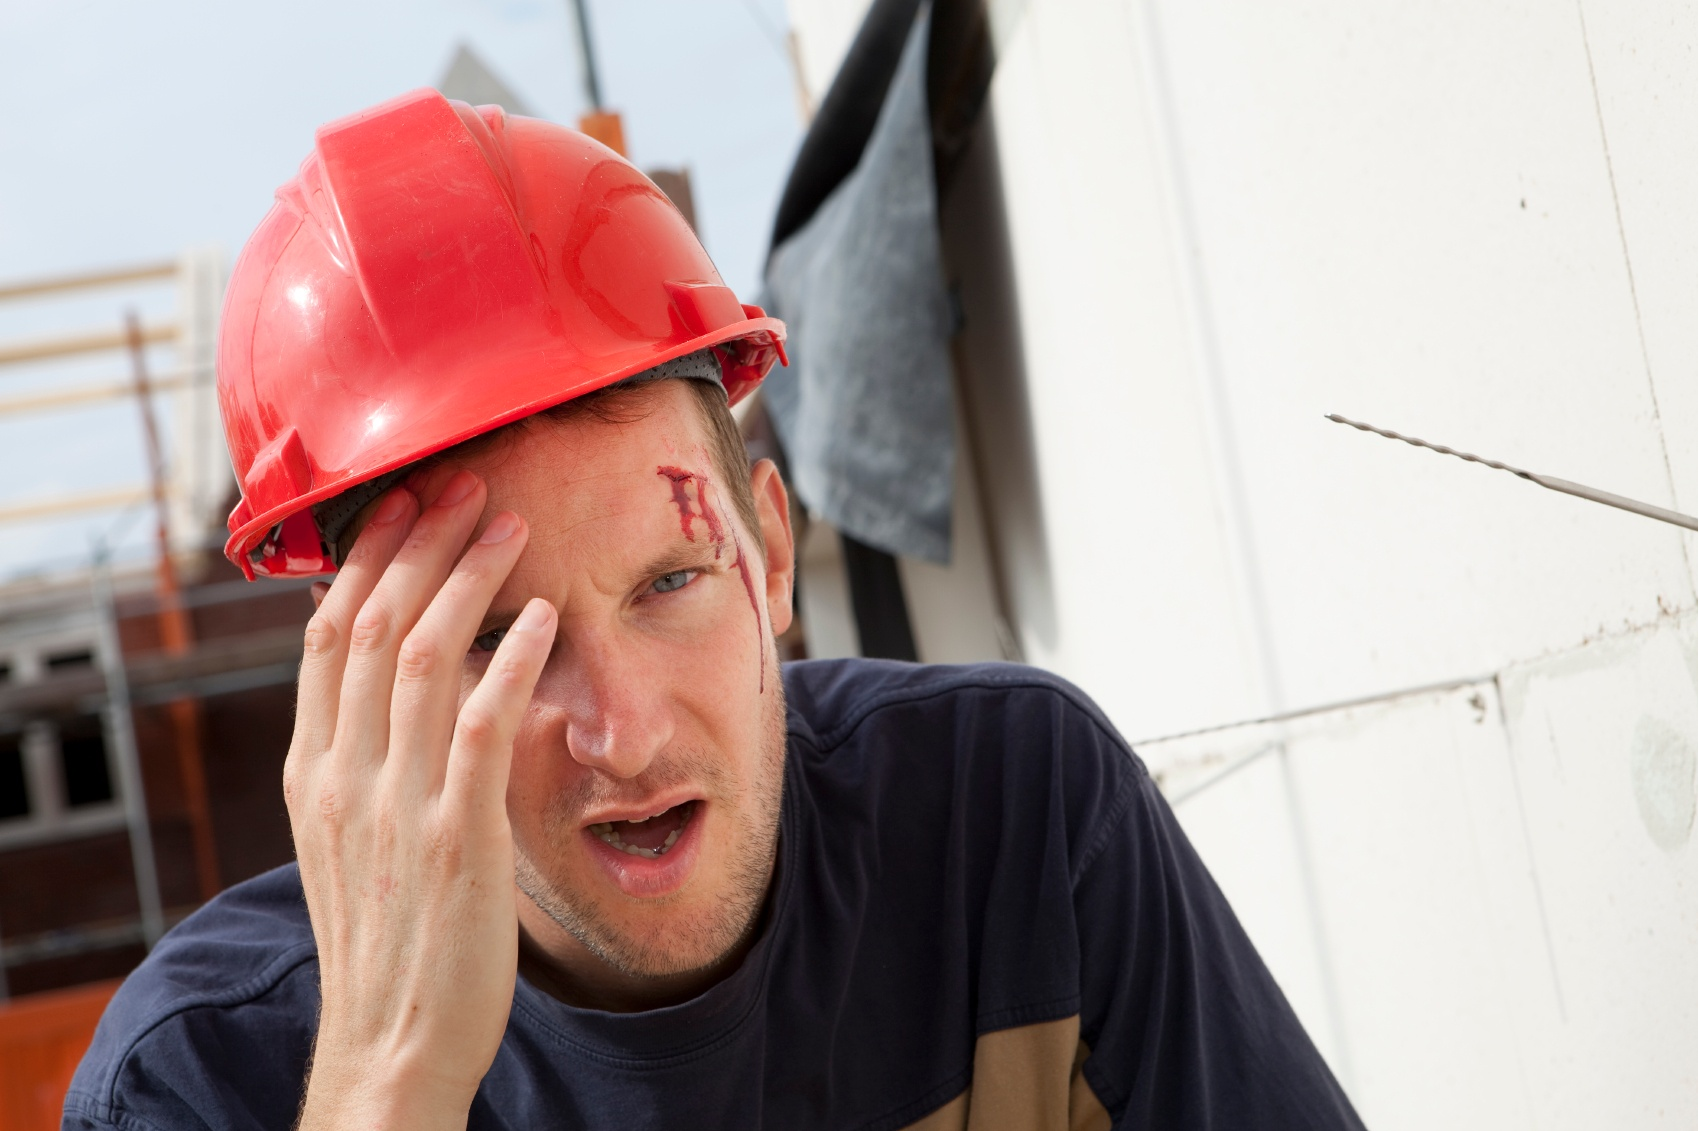 The Most Common Work-Related Injuries